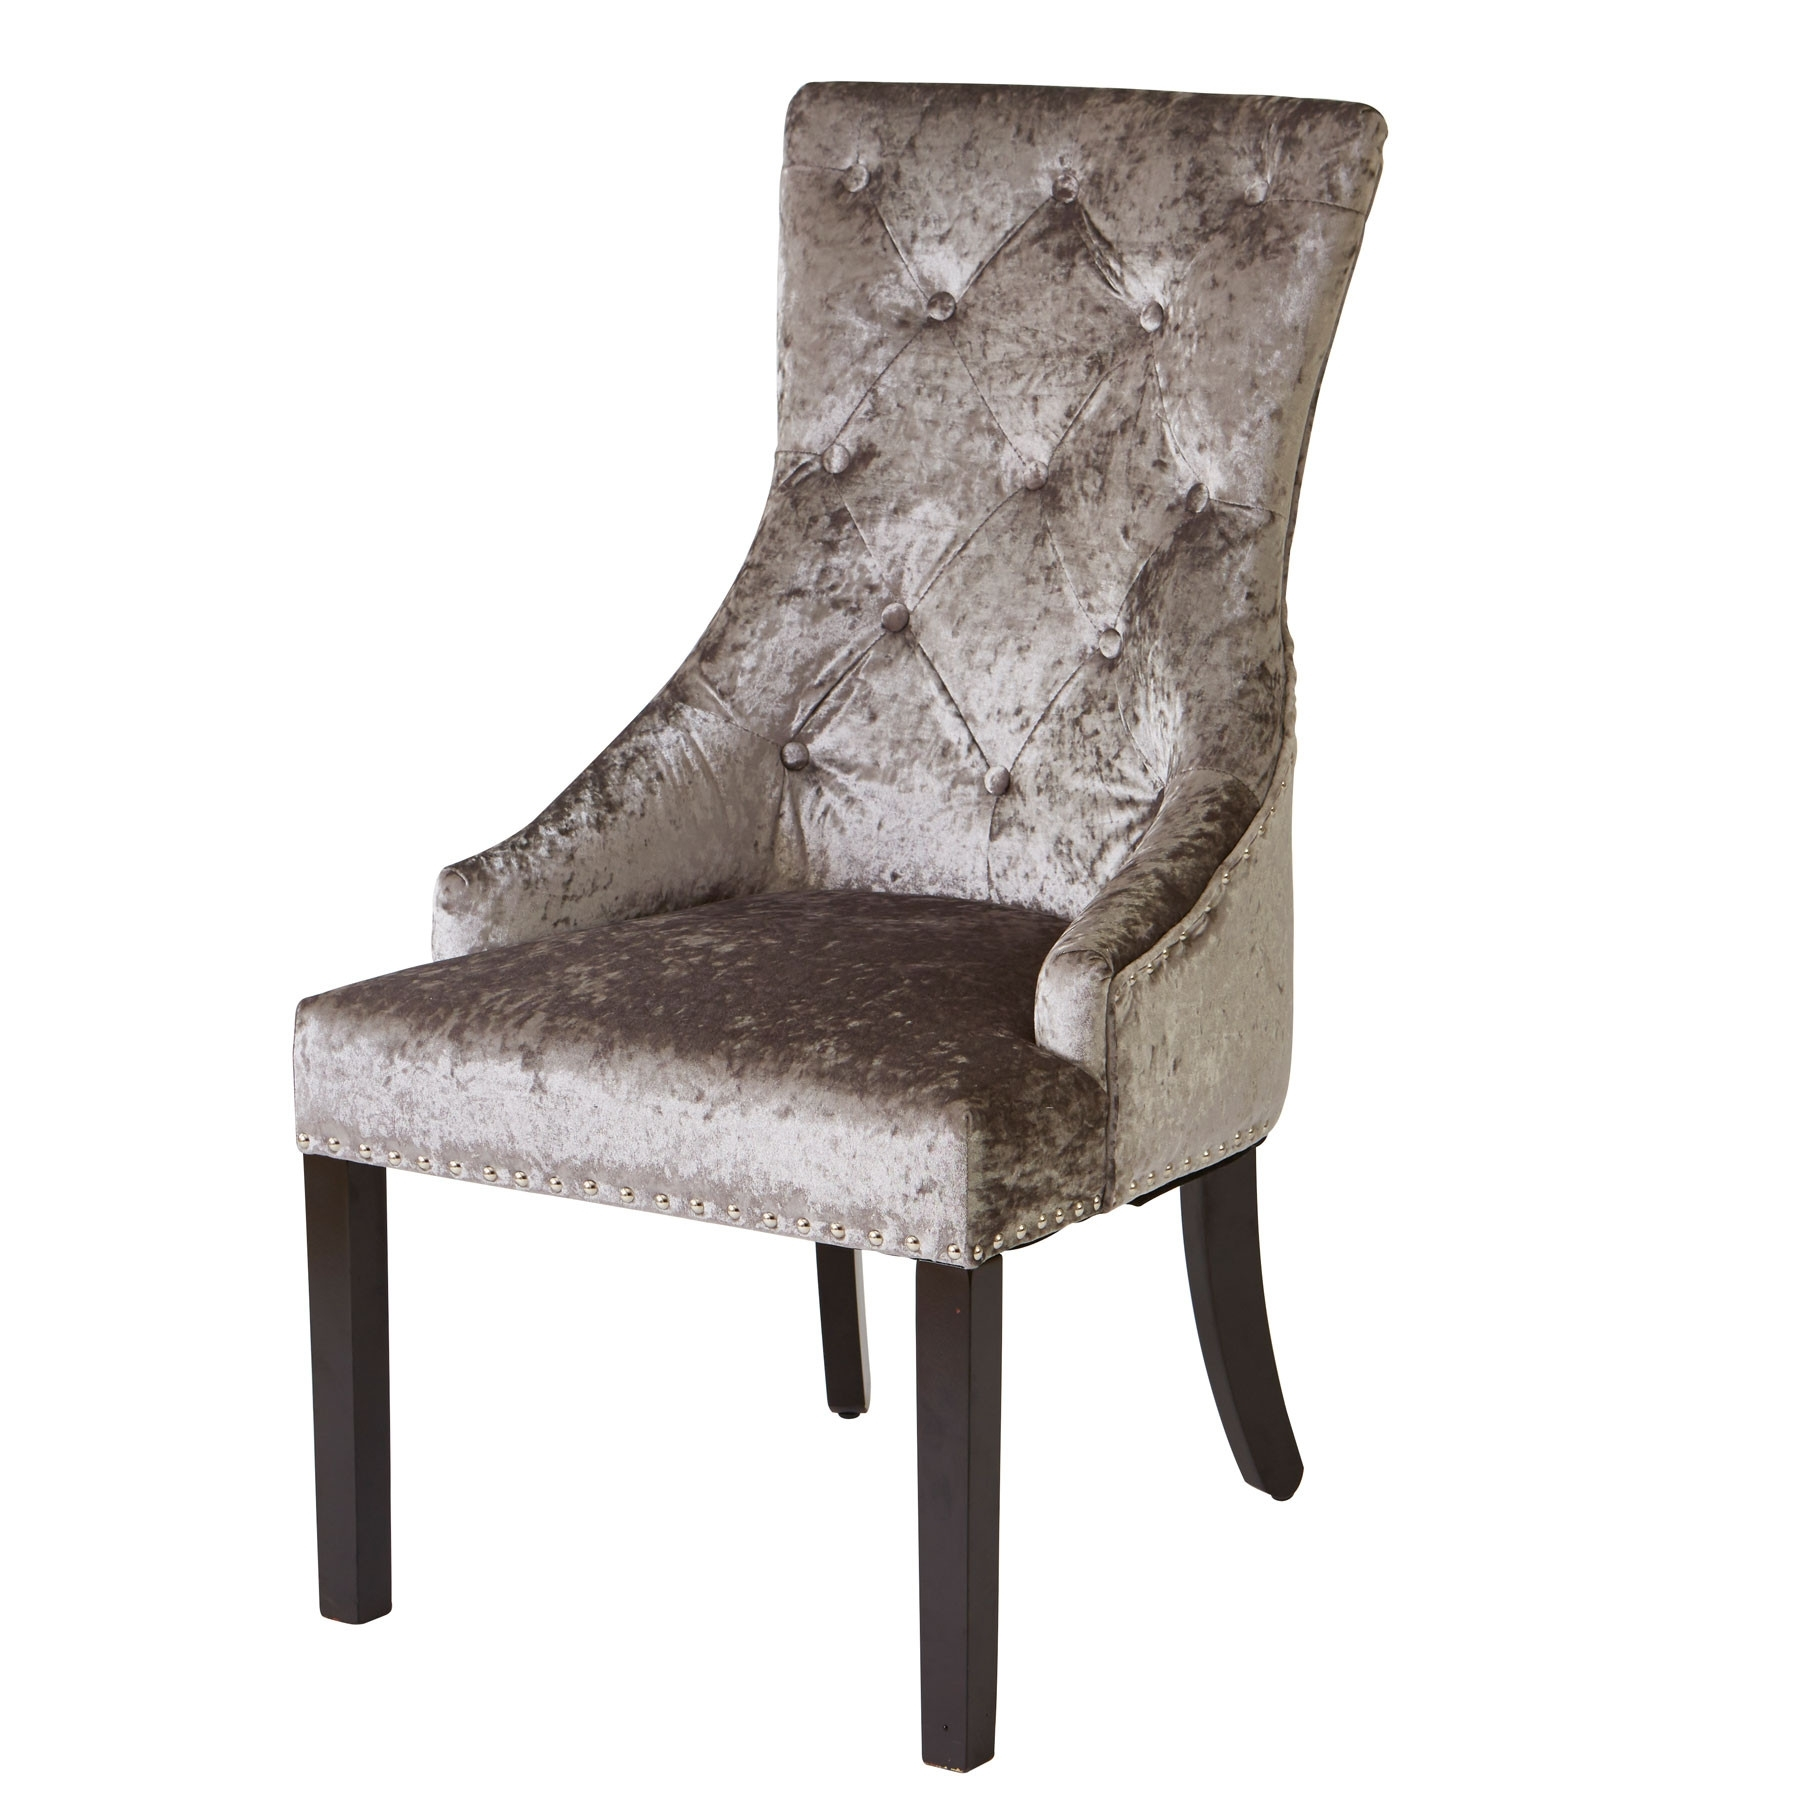 Most Recent Fabric Dining Chairs In Louis Silver Fabric Dining Chair With Knocker (View 19 of 25)